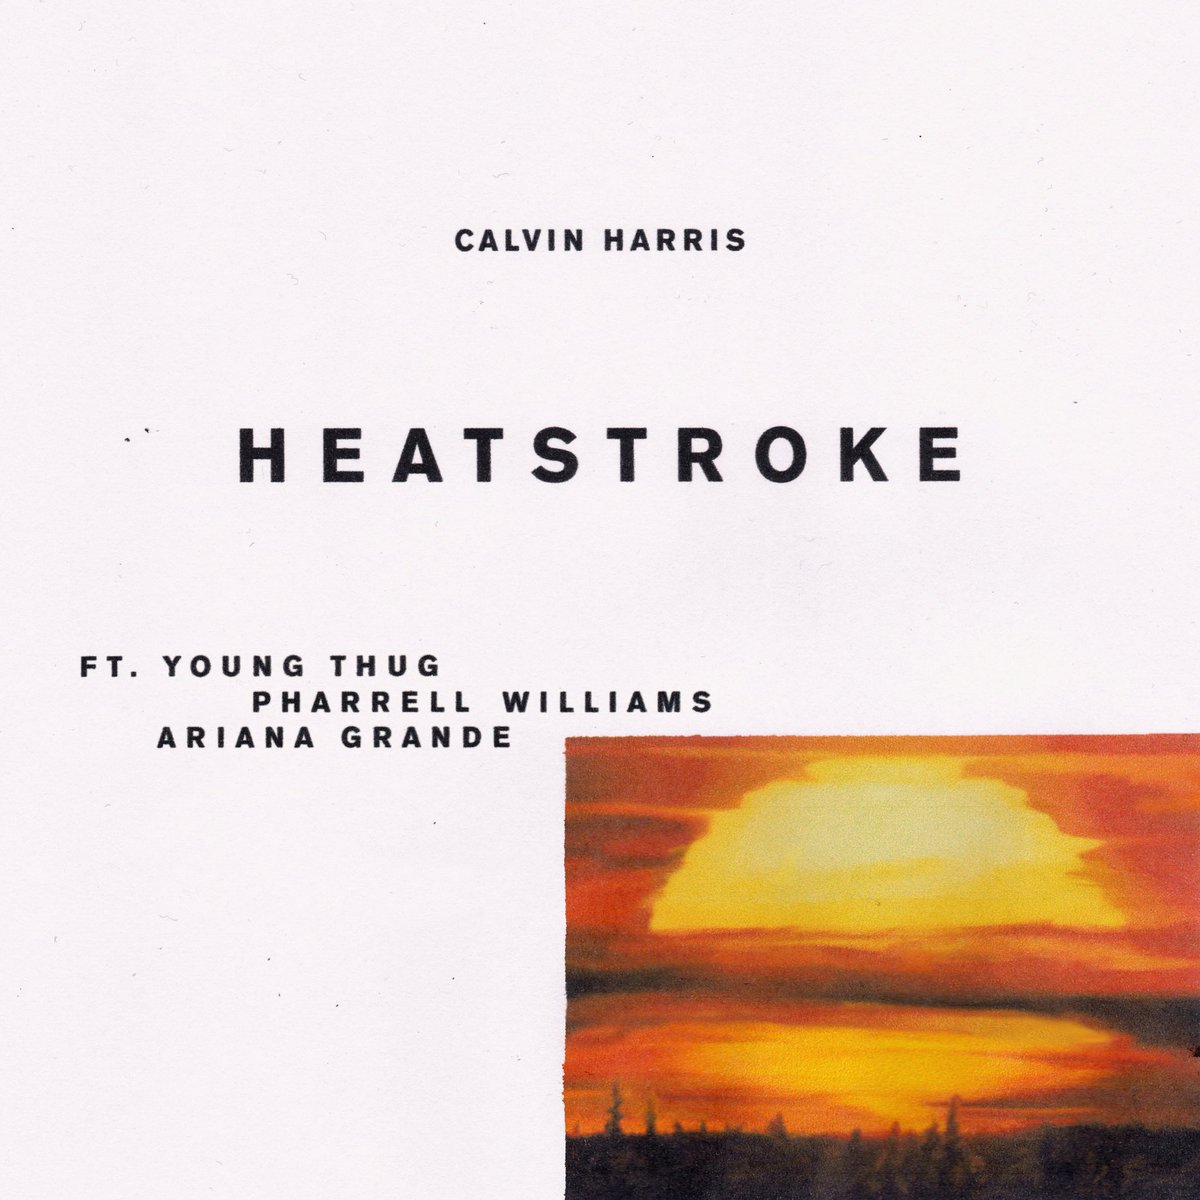 .@CalvinHarris recruited @youngthug, @Pharrell, and @ArianaGrande for...